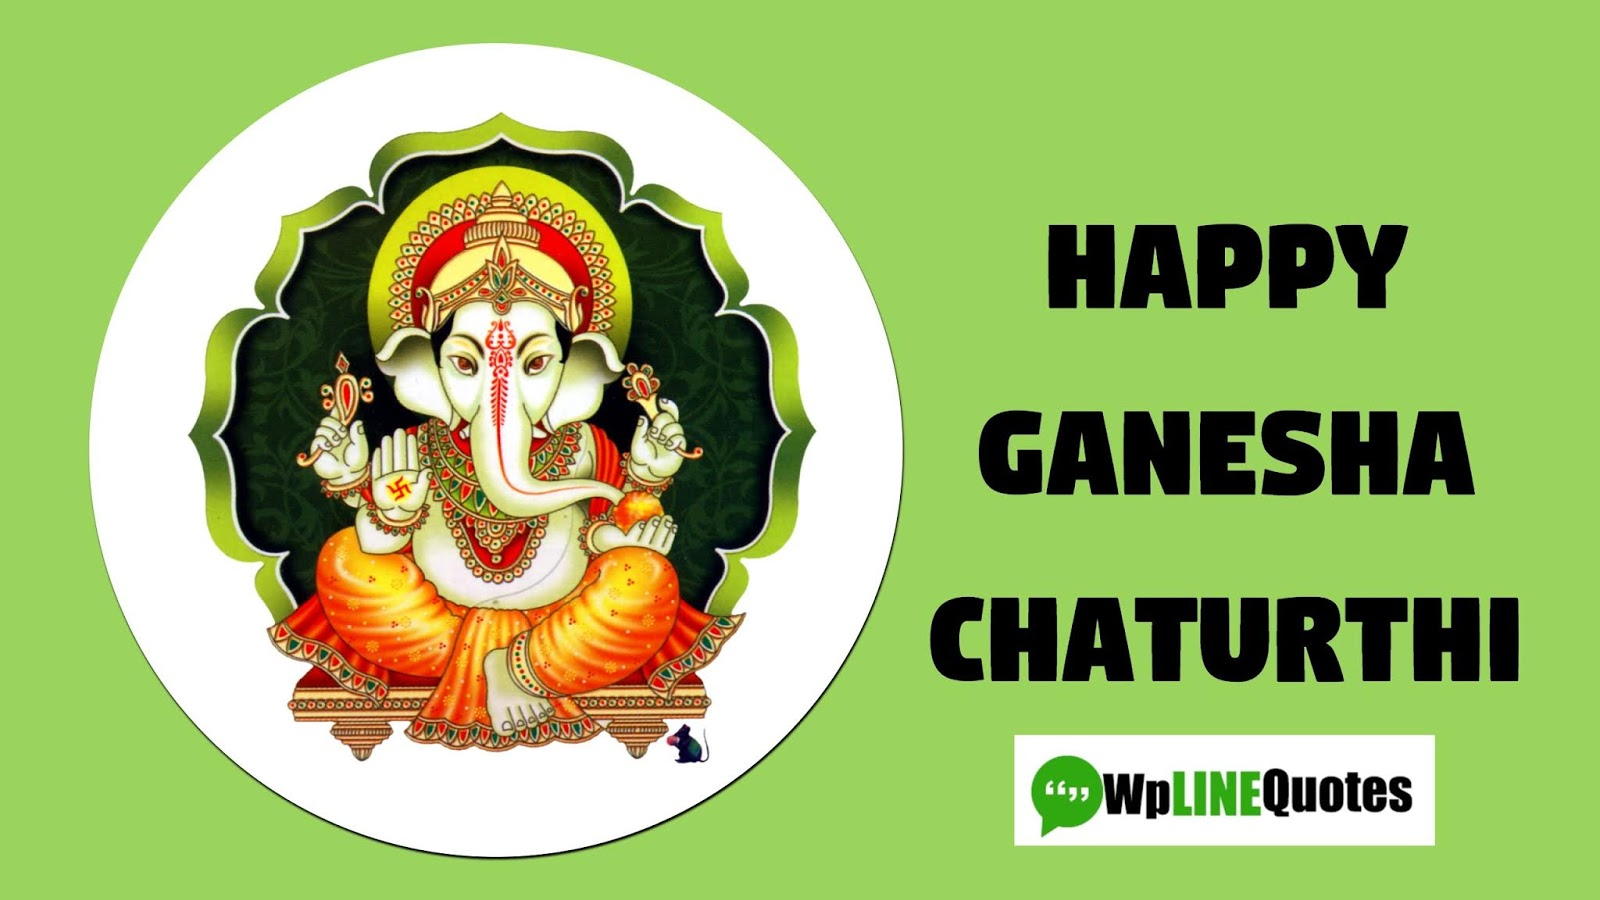 100+ Best Happy Ganesh Chaturthi 2019 Quotes In English ...